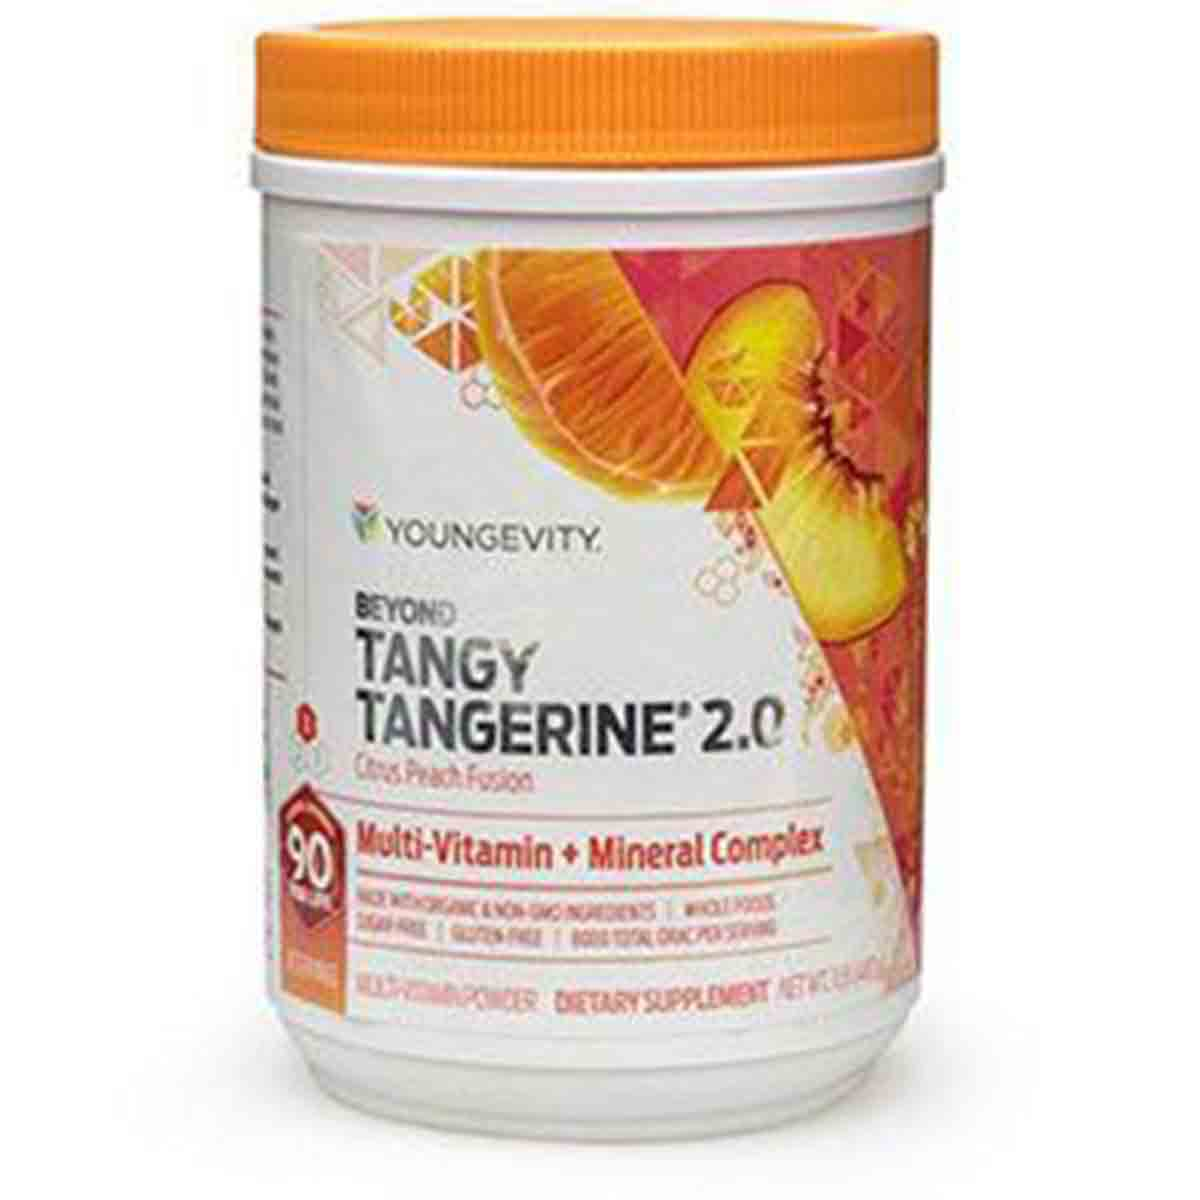 Beyond Tangy Tangerine 2.0